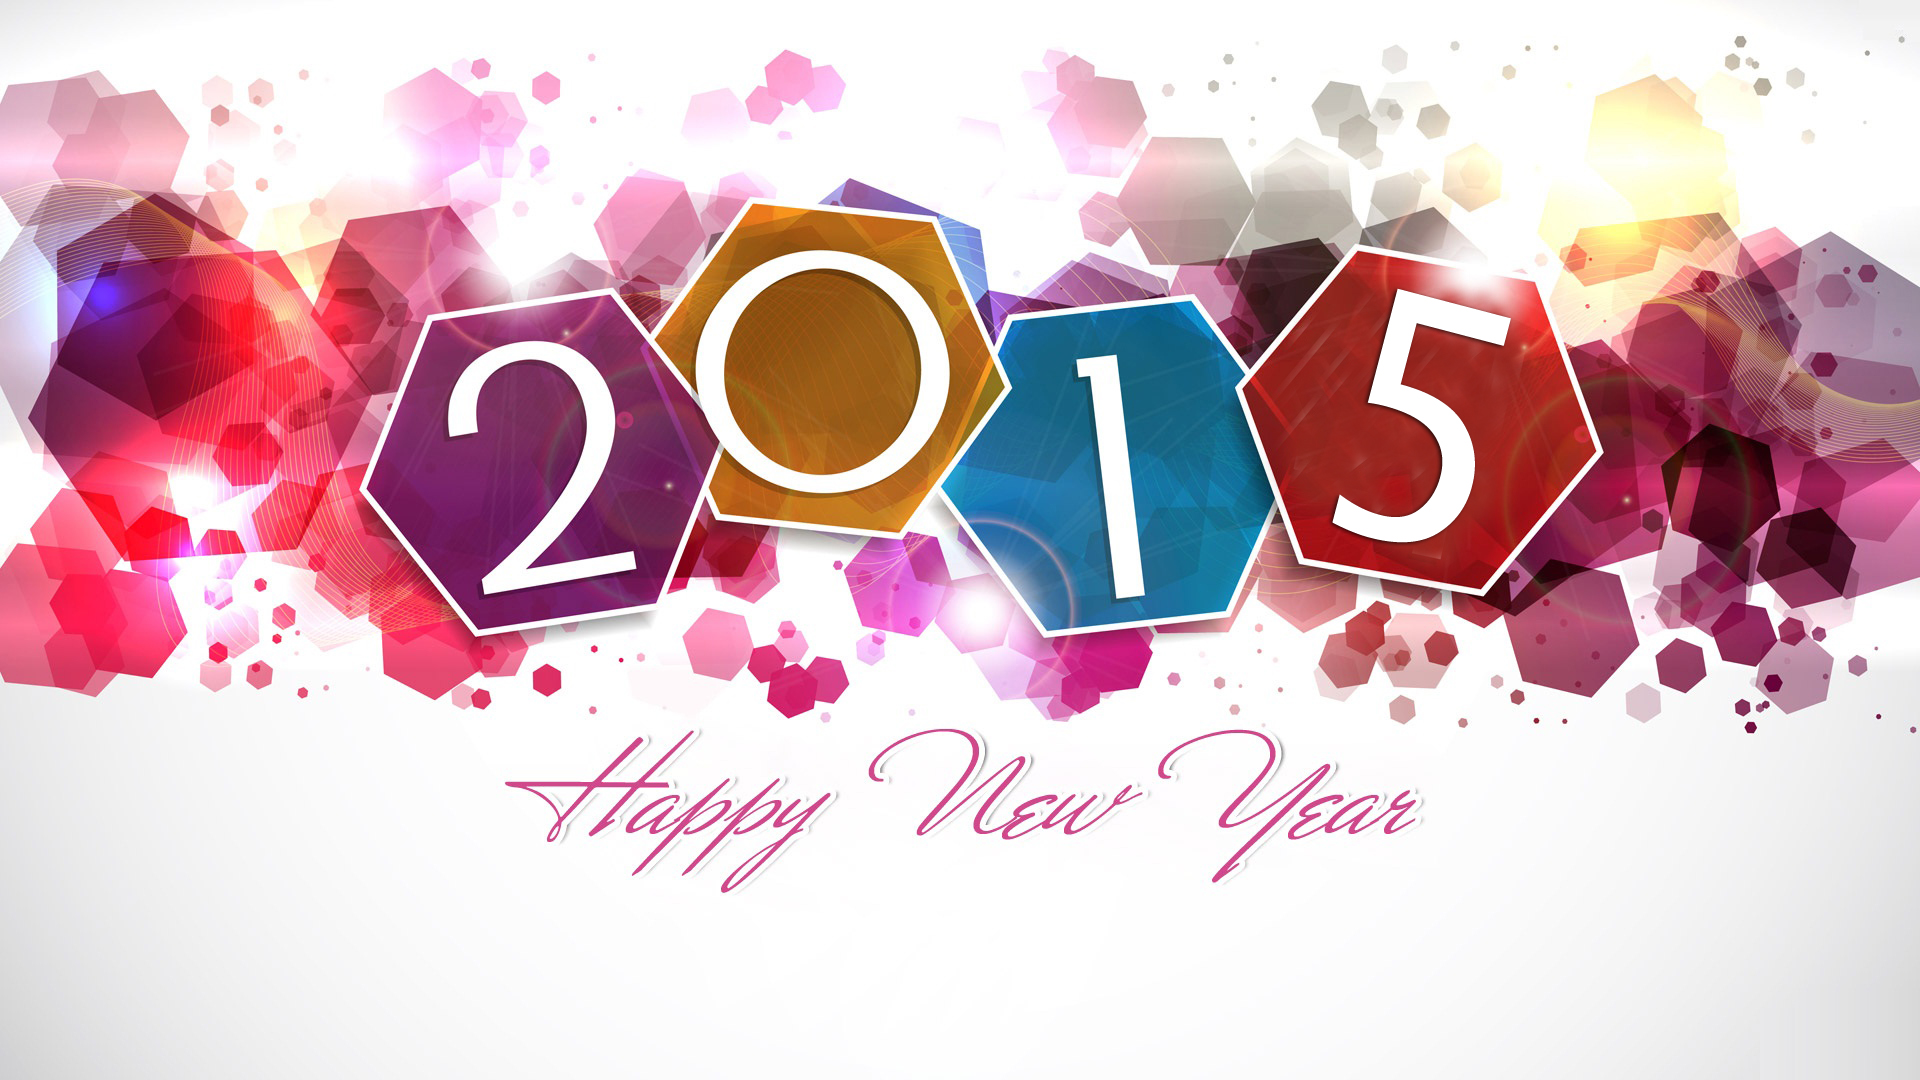 Happy New Year Sms   New Year 2015 Quotes   Wallpapers